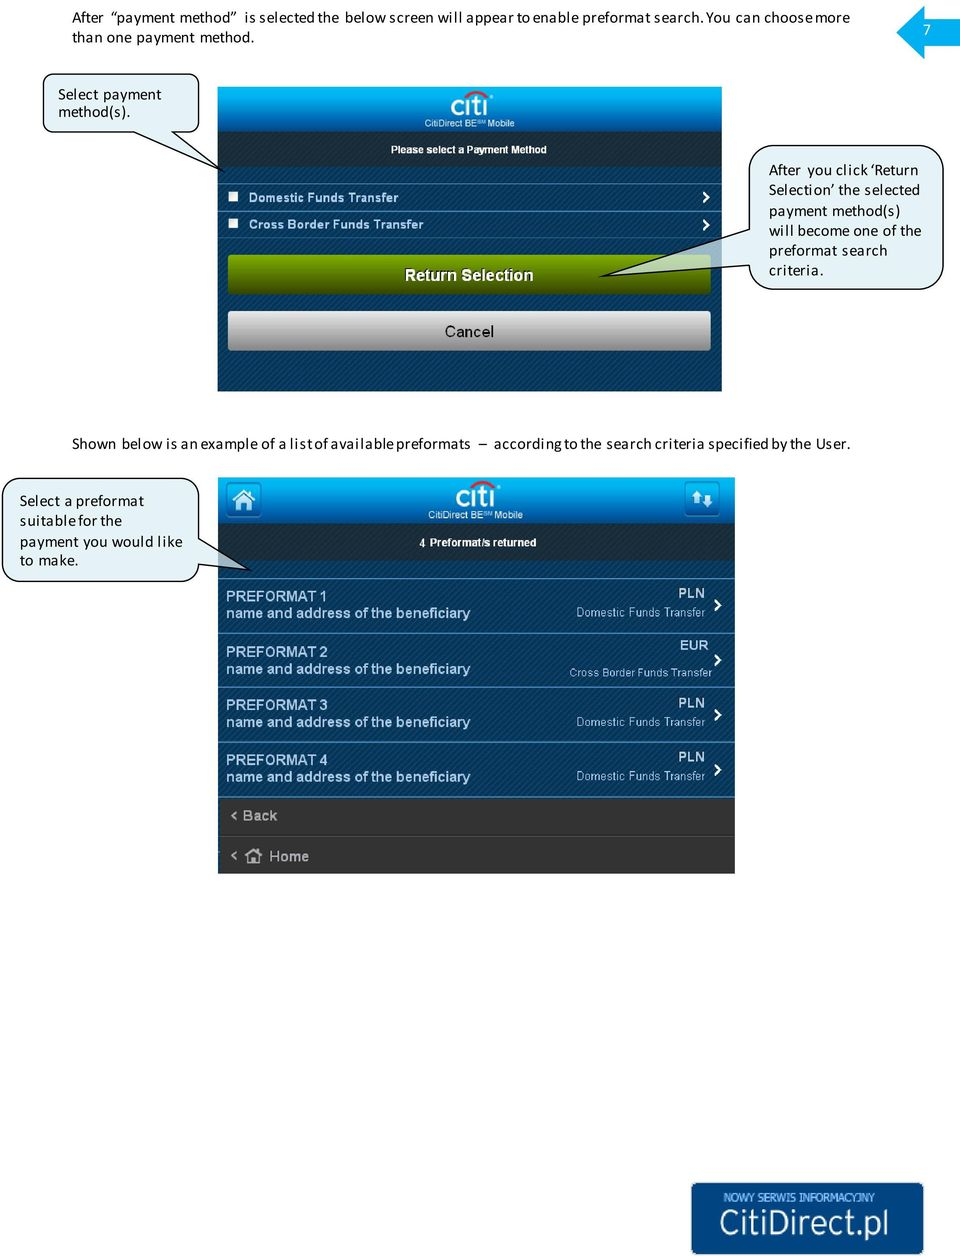 After you click Return Selection the selected payment method(s) will become one of the preformat search criteria.